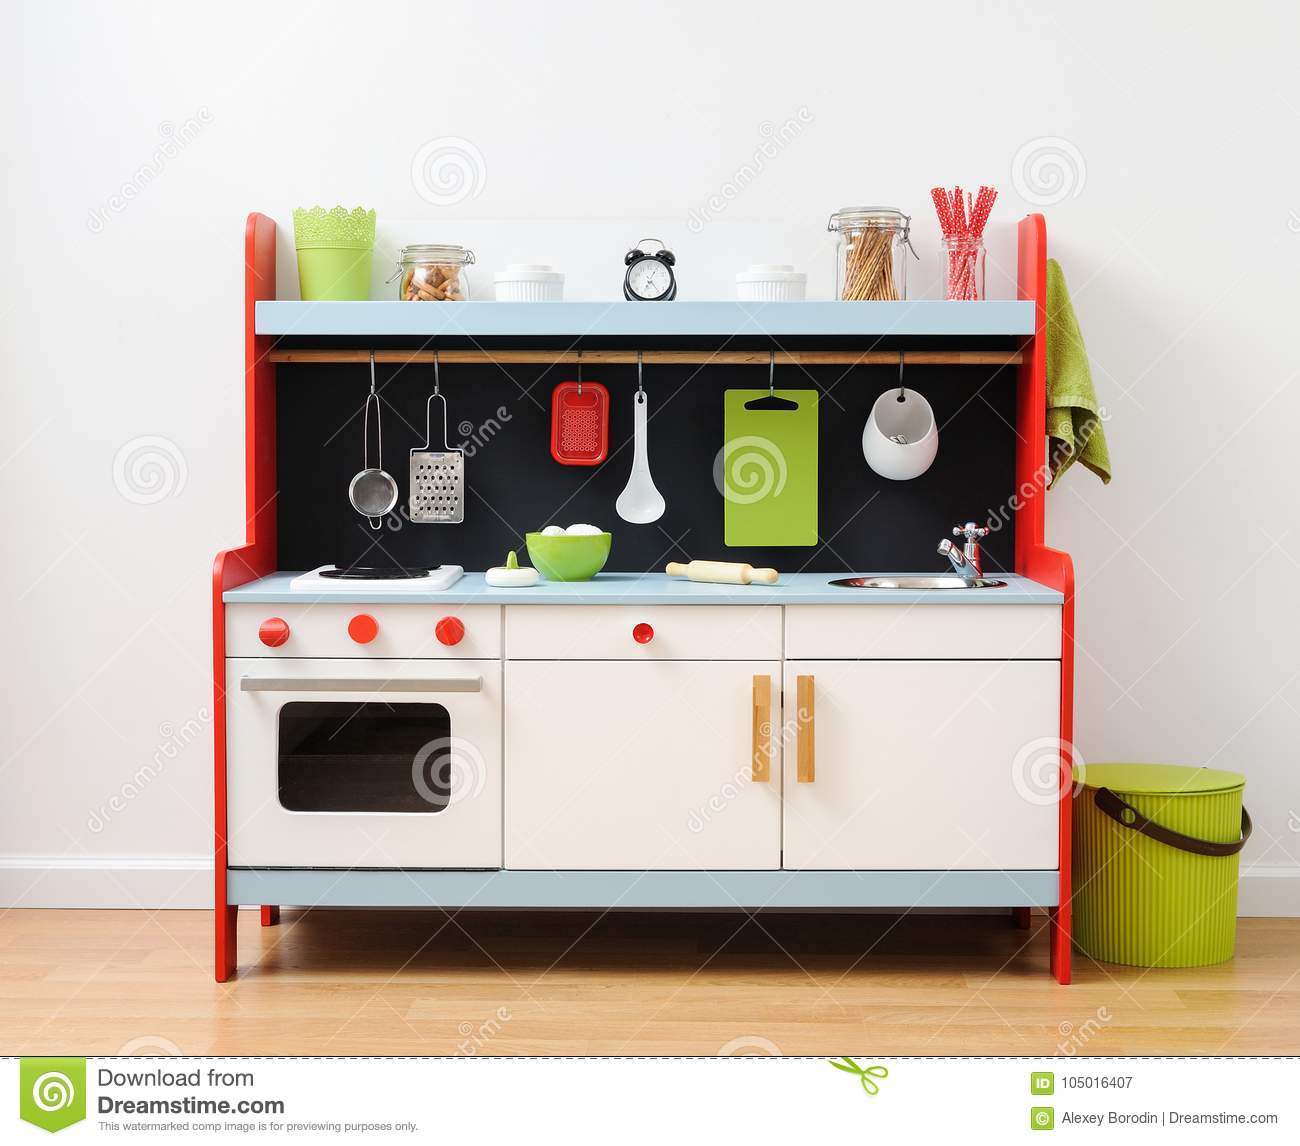 Colorful Toy Kitchen With Kitchen Utensils Ready For